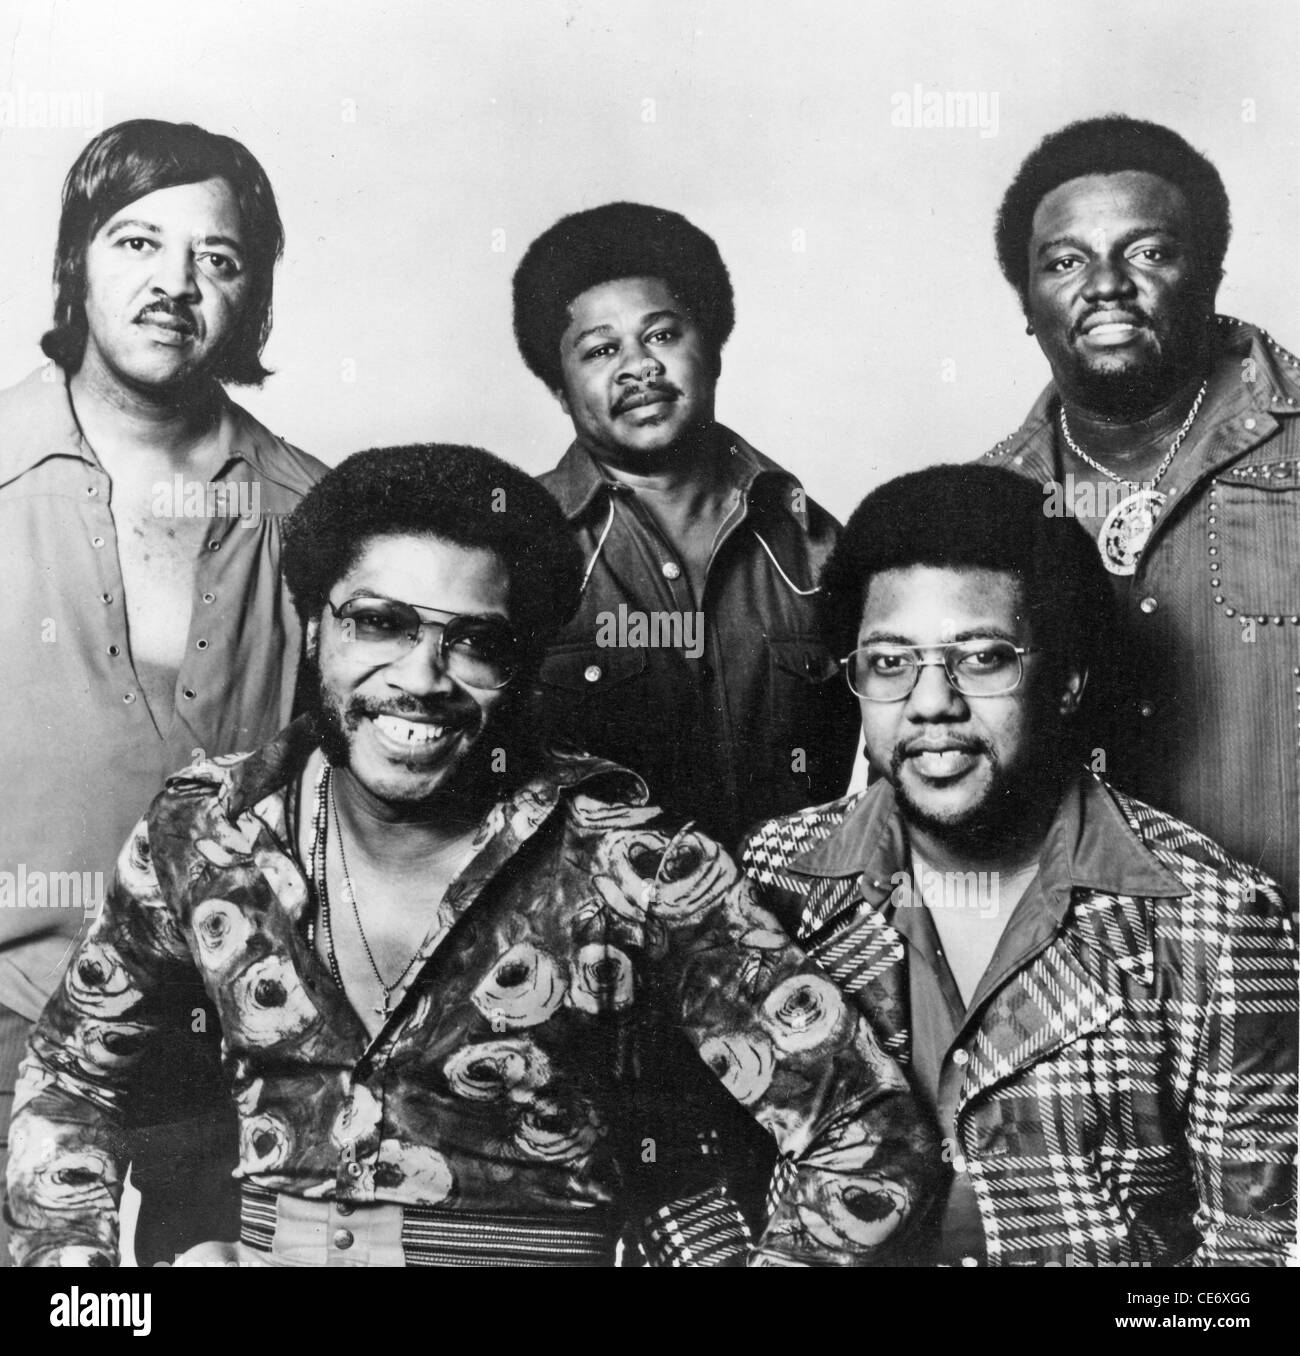 MIGHTY CLOUDS OF JOY Promotional photo of US Gospel group about 1975 - Stock Image